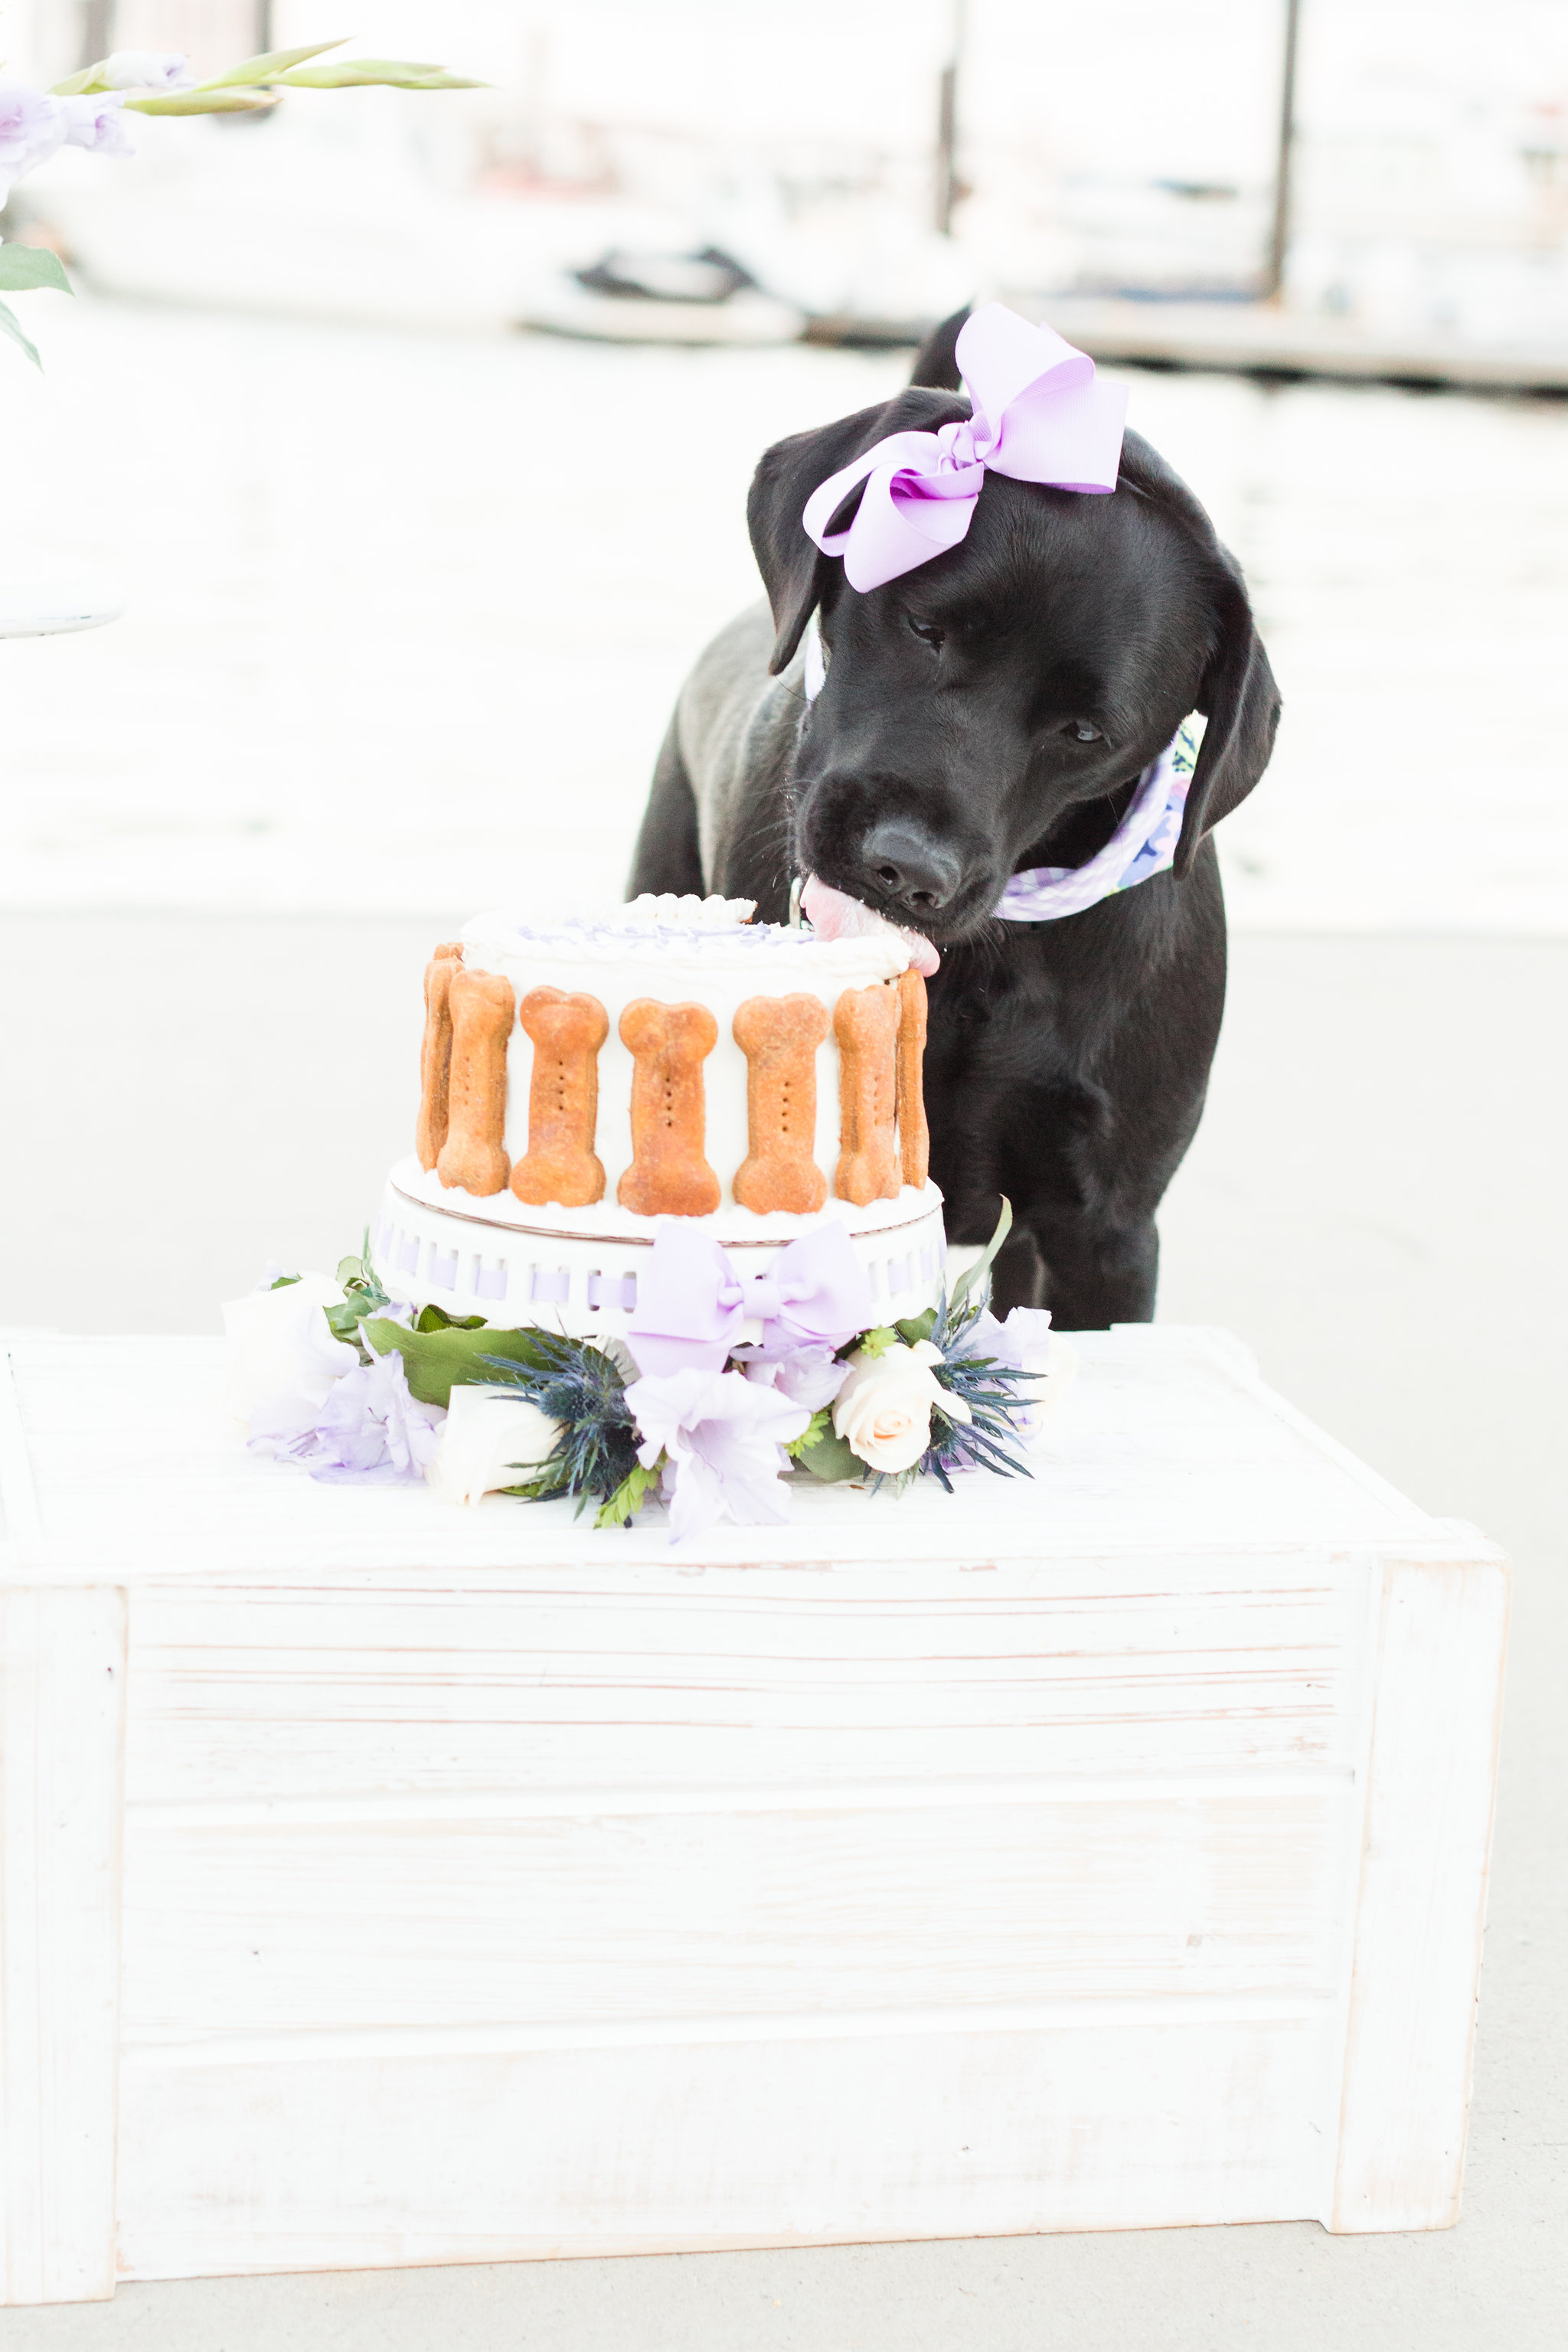 Expert tips on how to do a dog cake smash and how to capture the perfect dog birthday photos - fuss free and budget friendly.